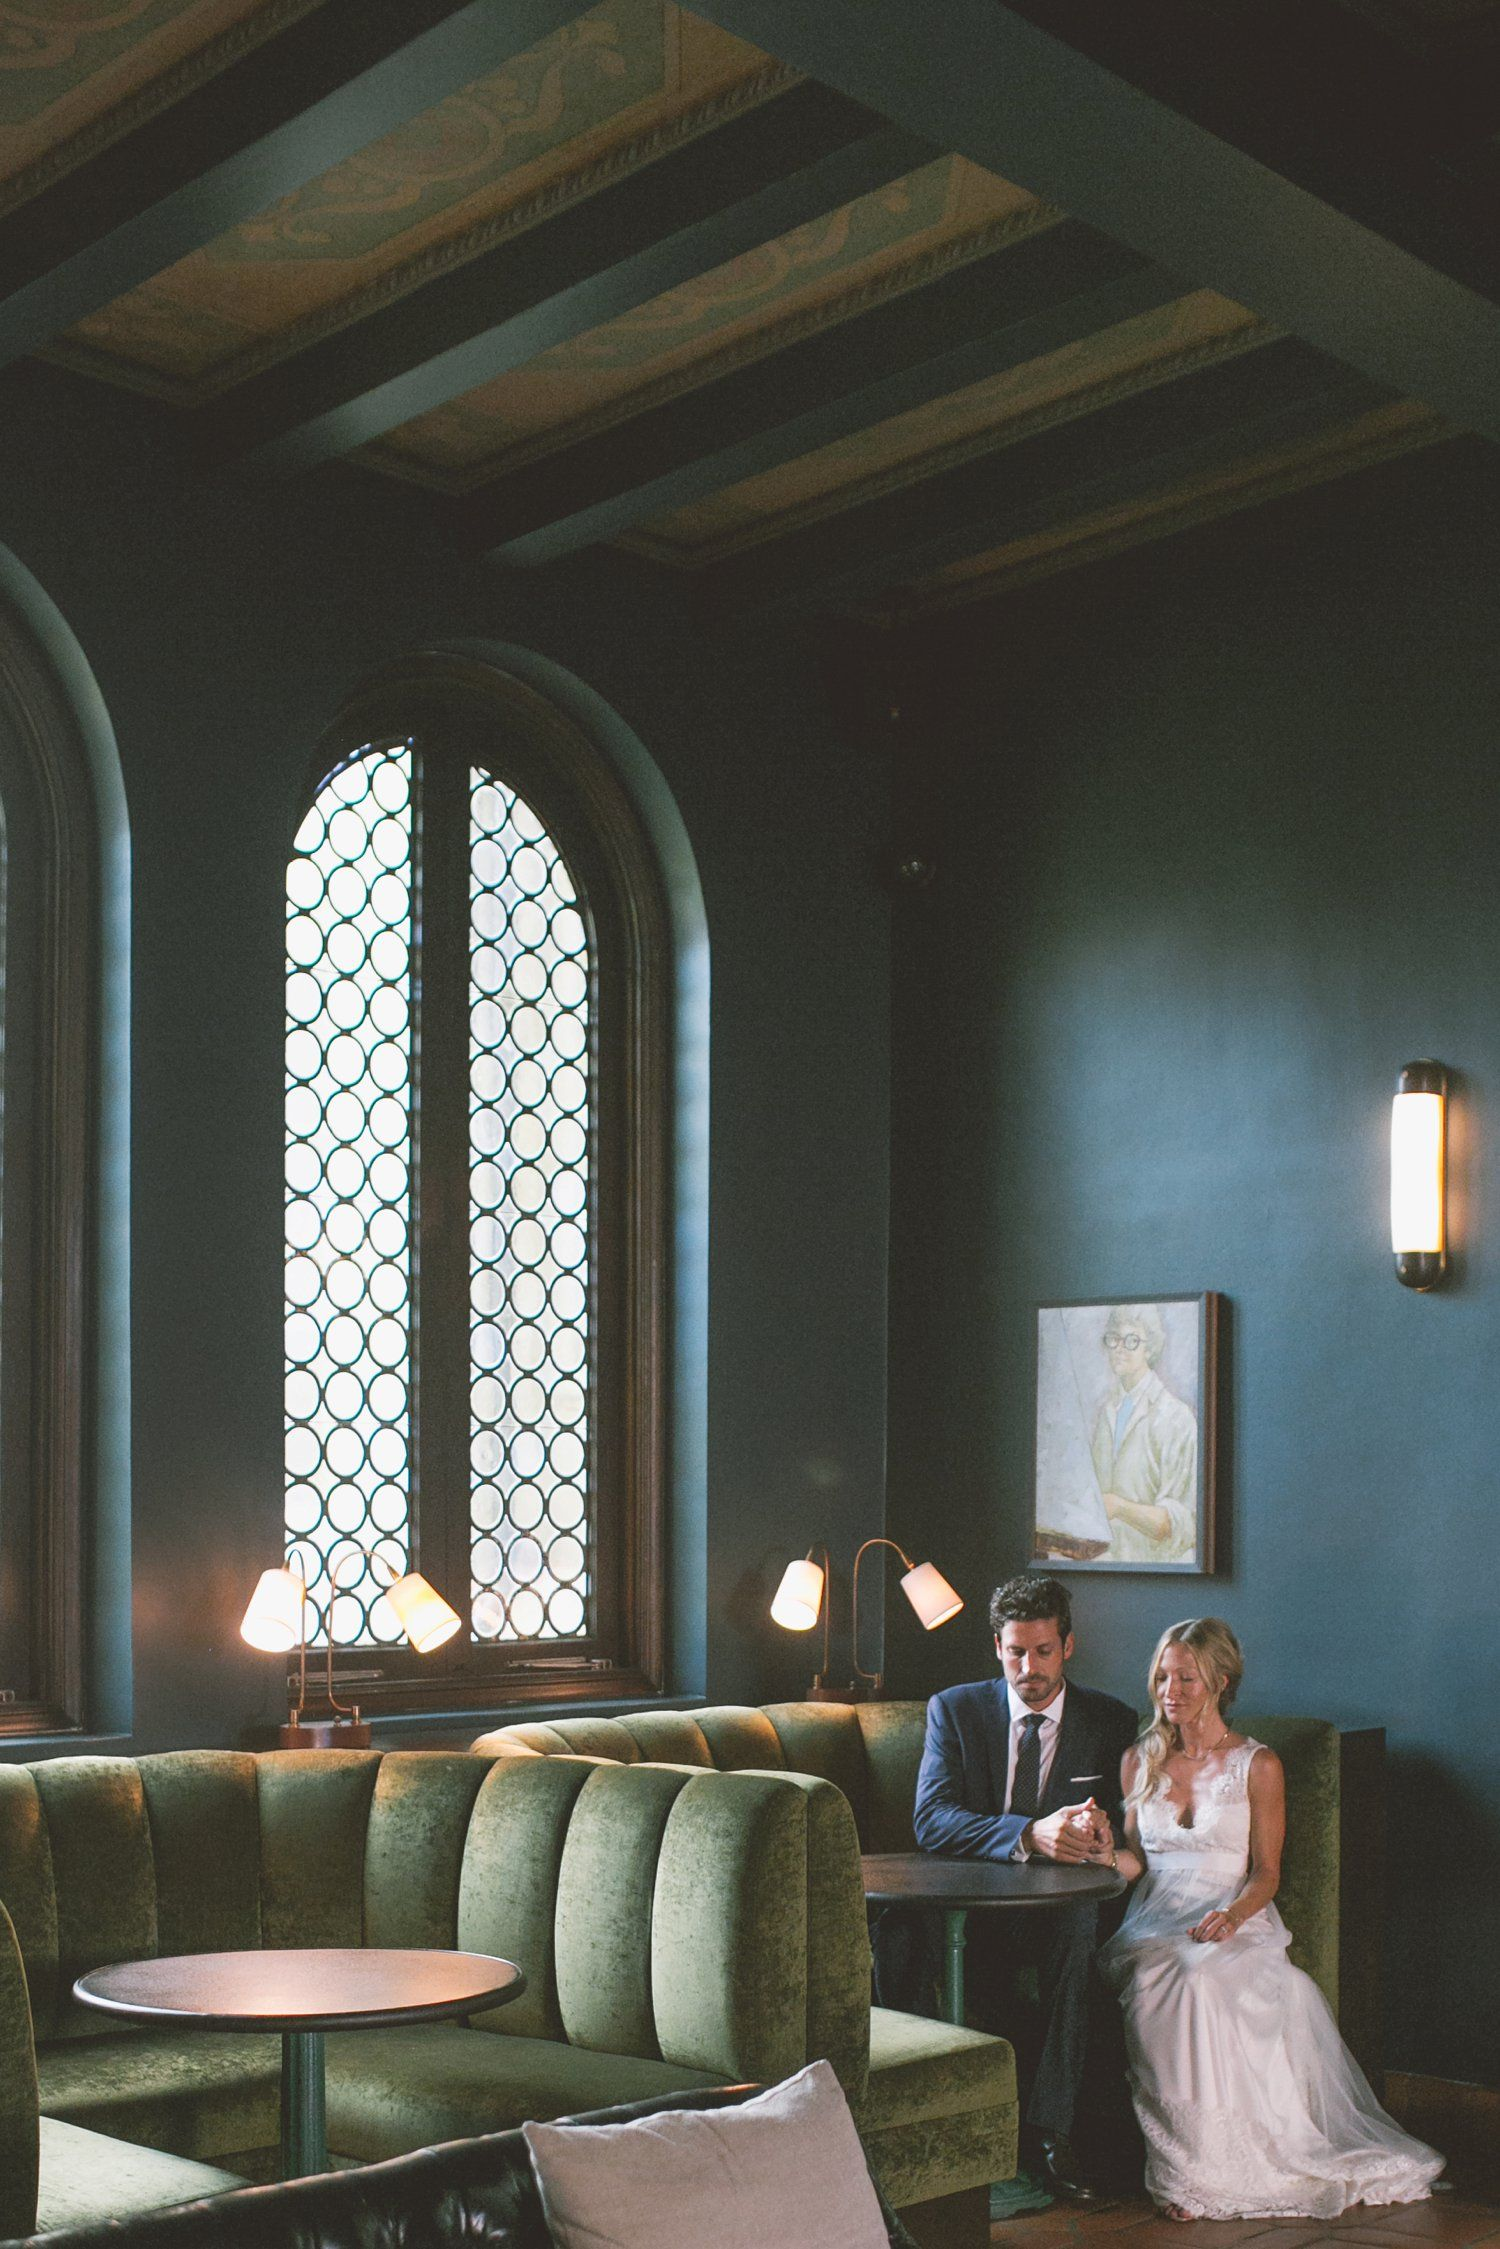 Romantic is what we'd call this photo: from Palihouse Santa Monica's charming interiors to this adorable newlywed. @palisociety #weddings #venues #hotels